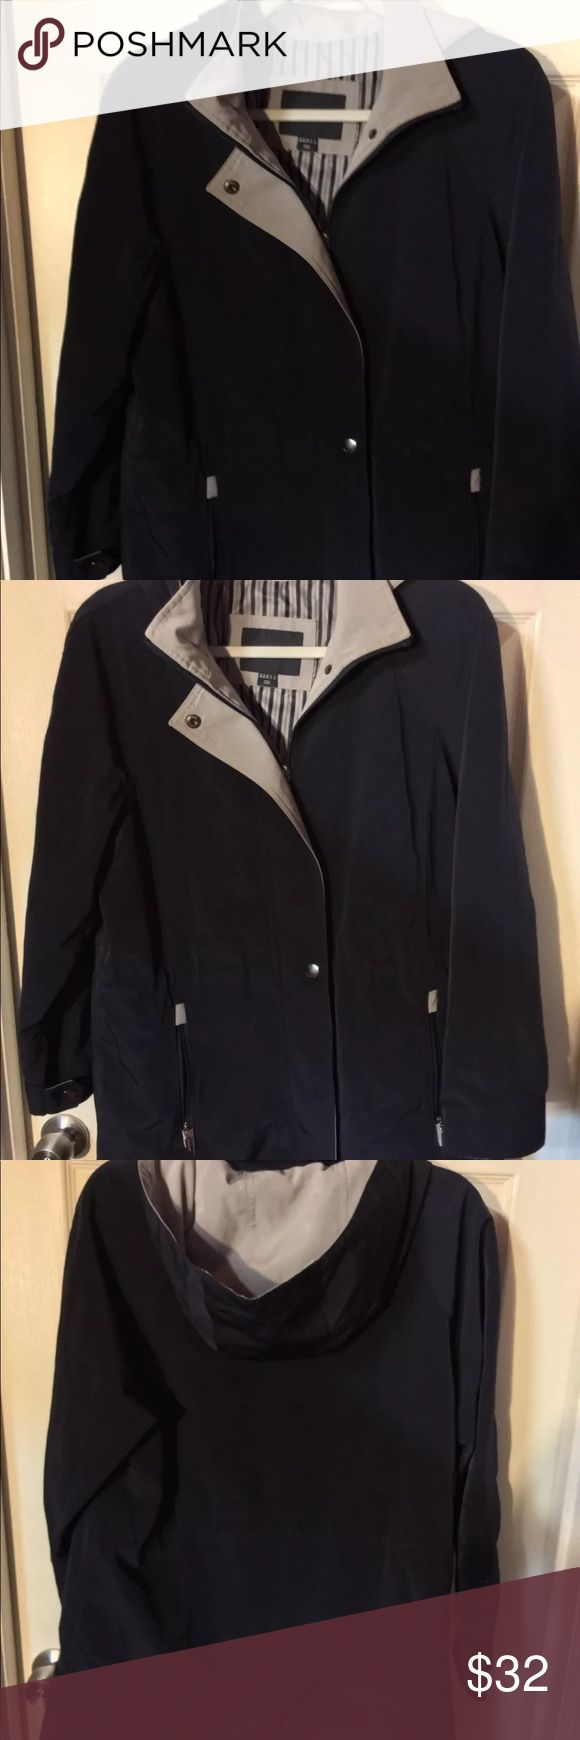 Nautica Woman's coat size M Preowned woman's Nautica jacket coat size M in excellent condition navy blue and taupe gray. Has two exterior pockets, hood zipper closure and snap closure also has ties for cinch waist Nautica Jackets & Coats